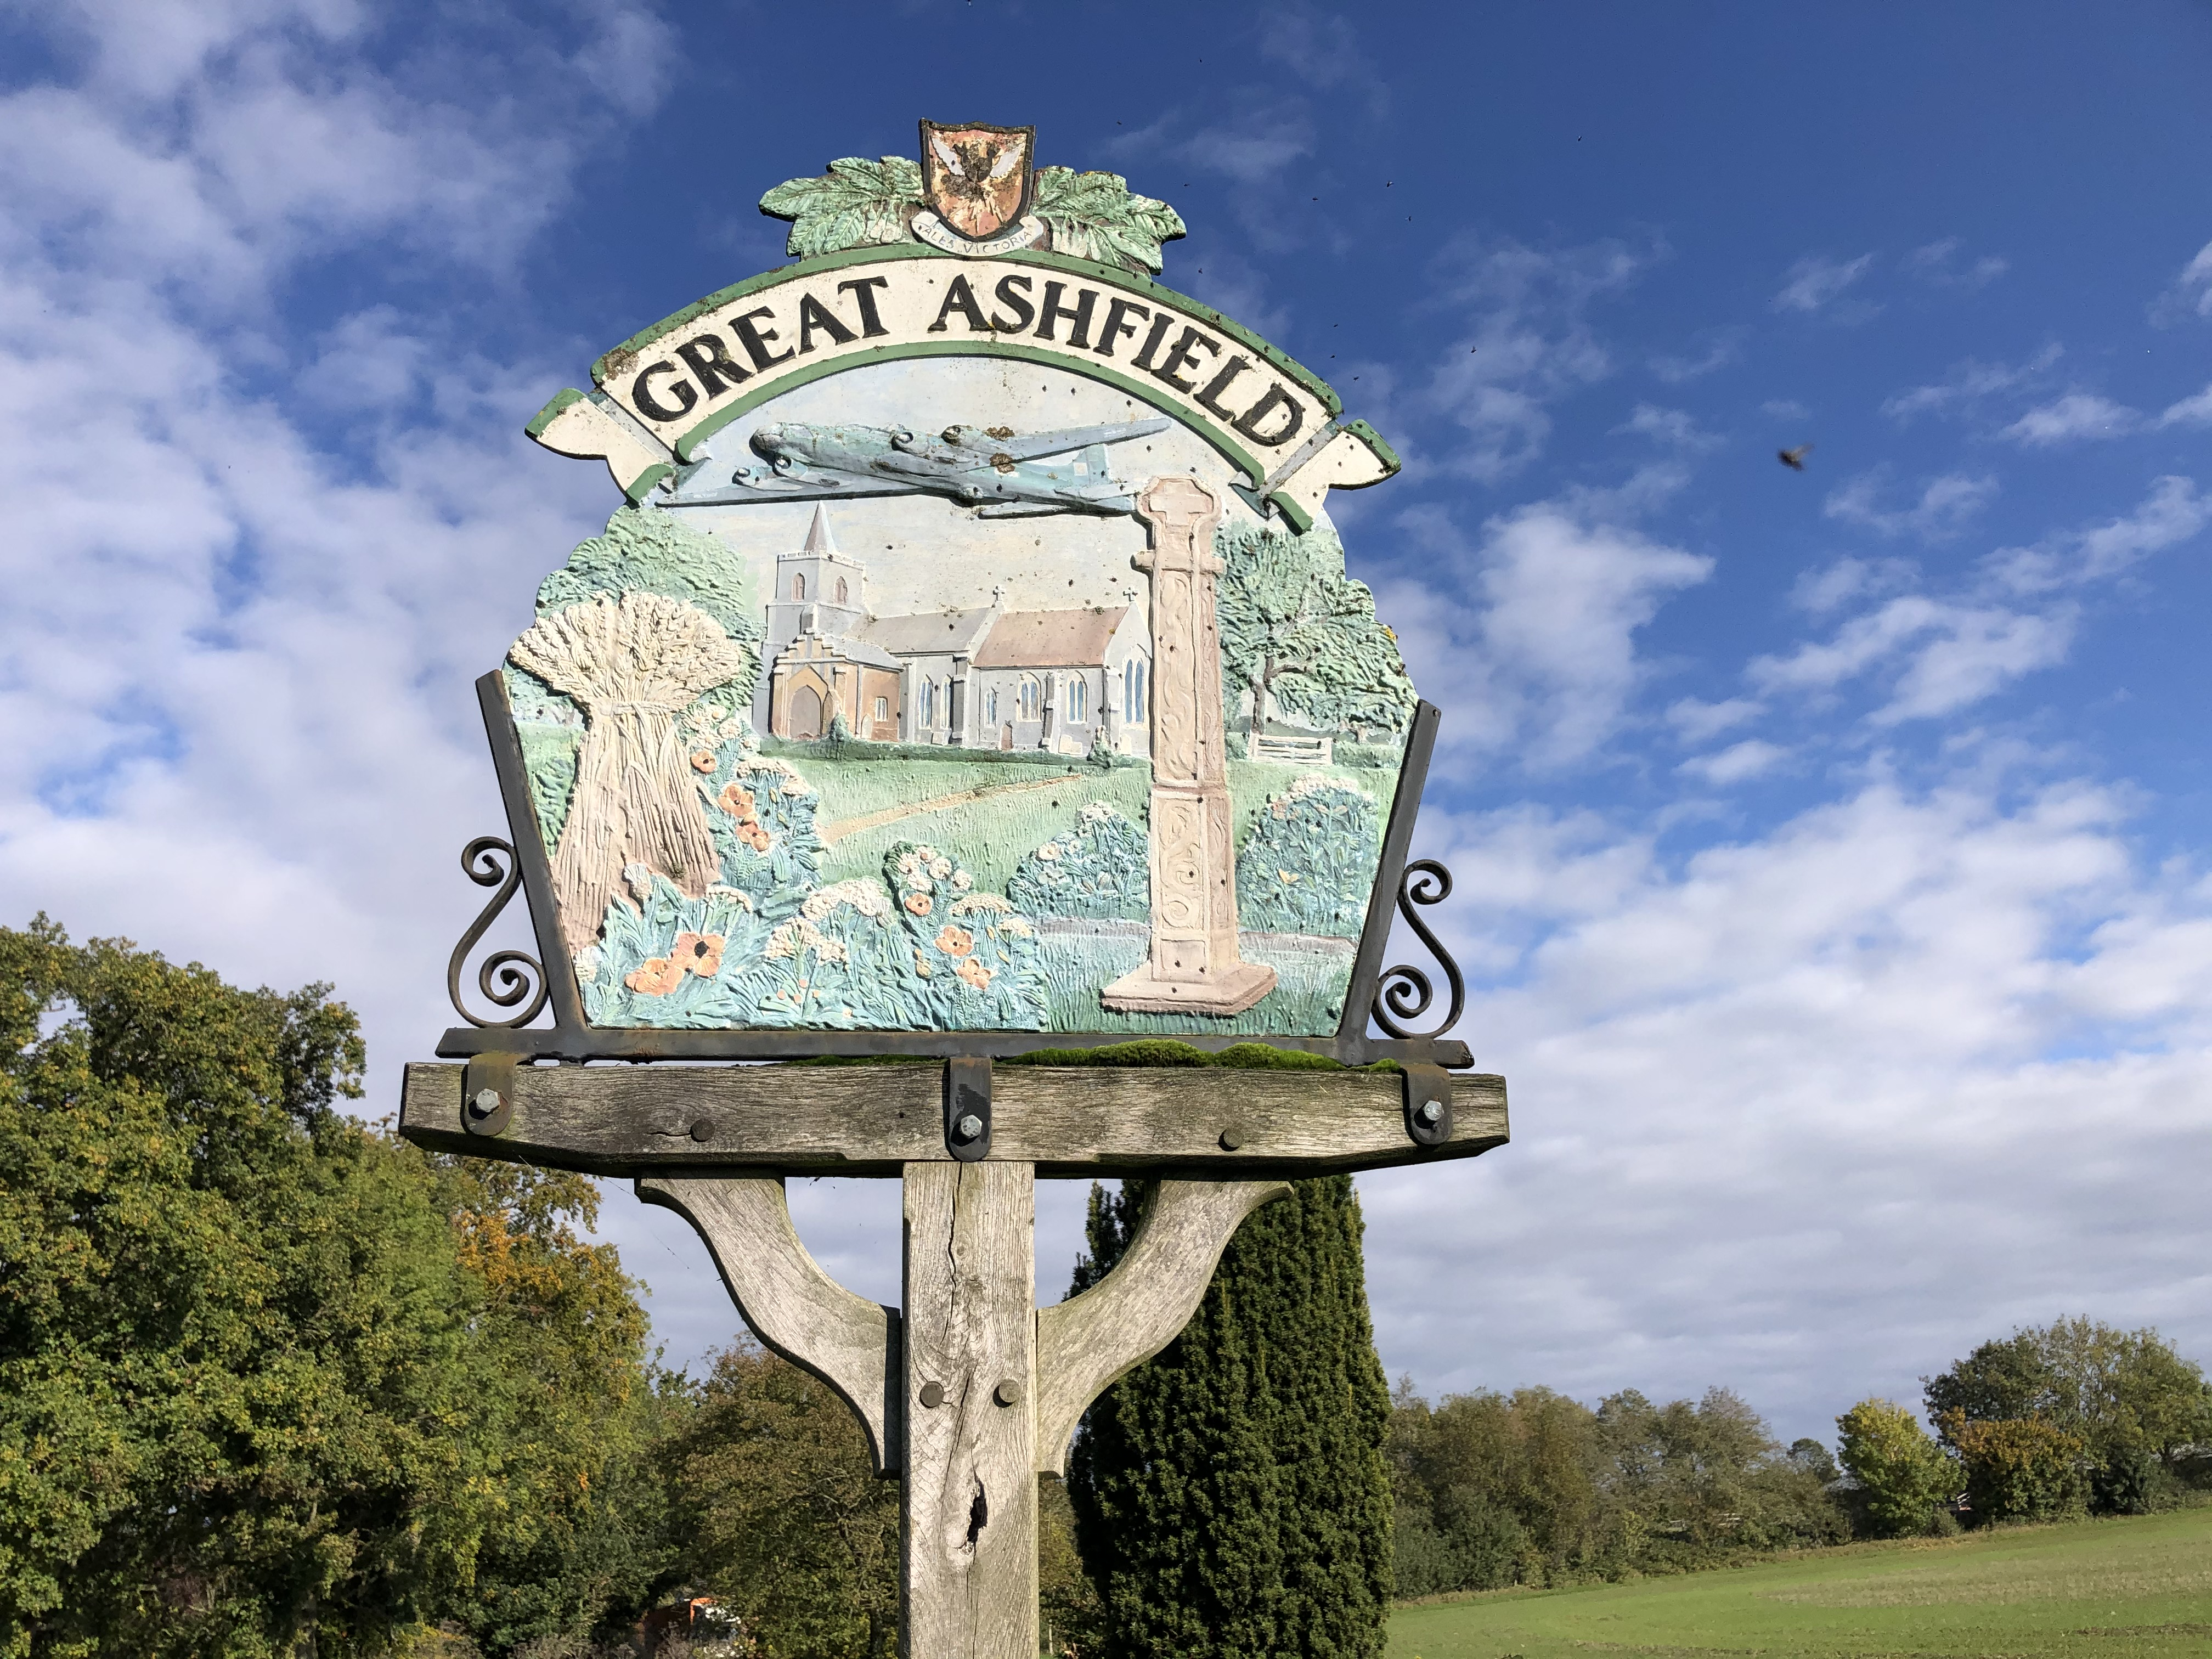 GREAT ASHFIELD